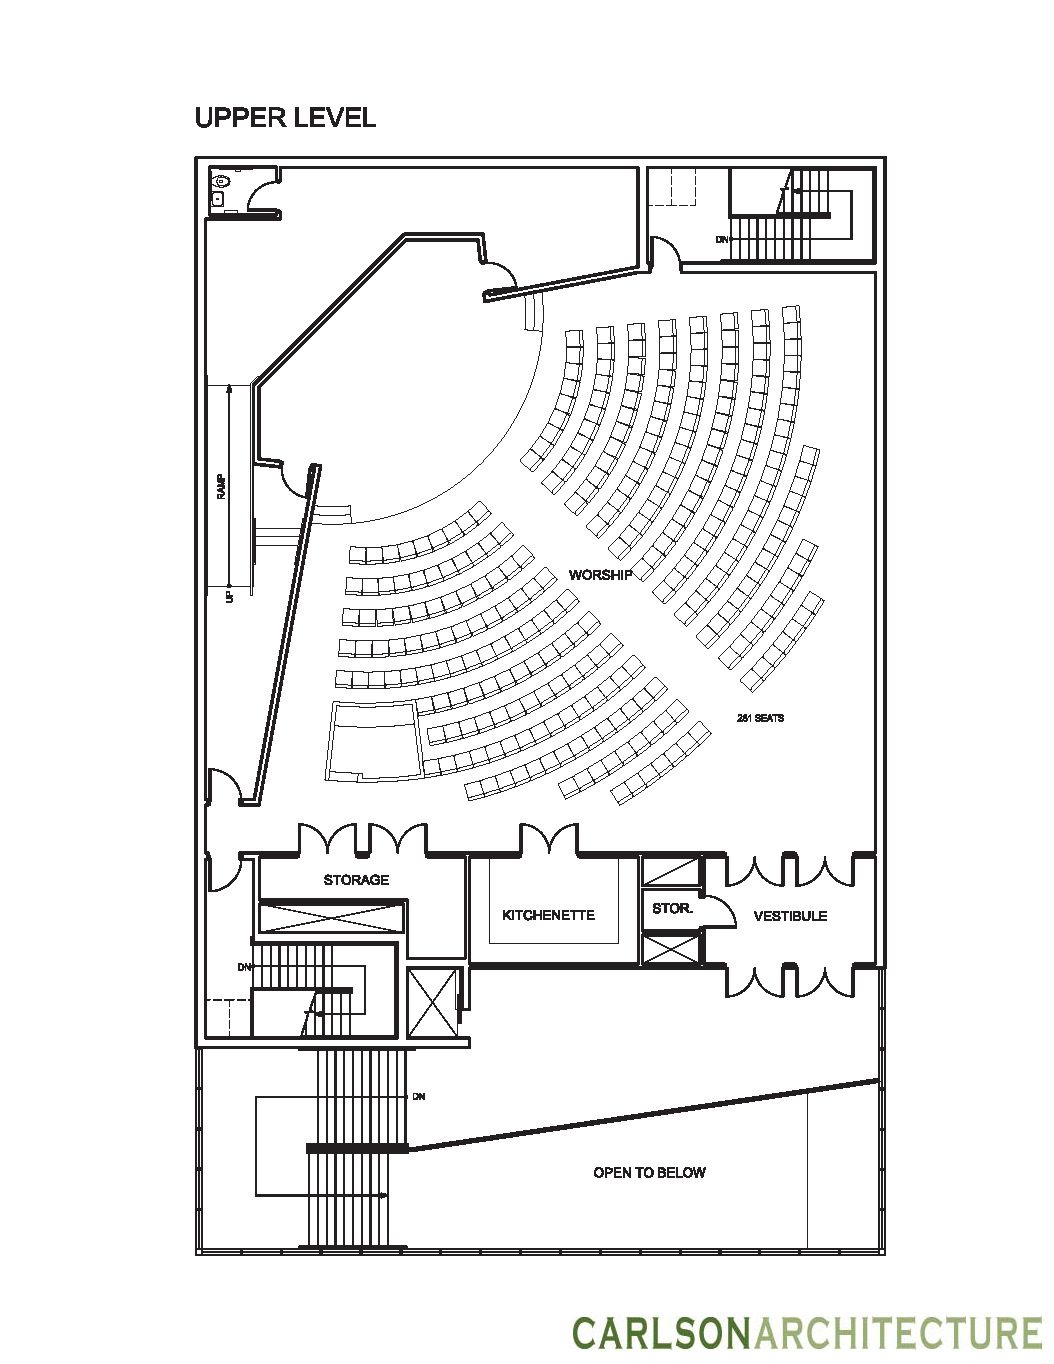 Small church floor plan church building plan church for Church floor plan designs